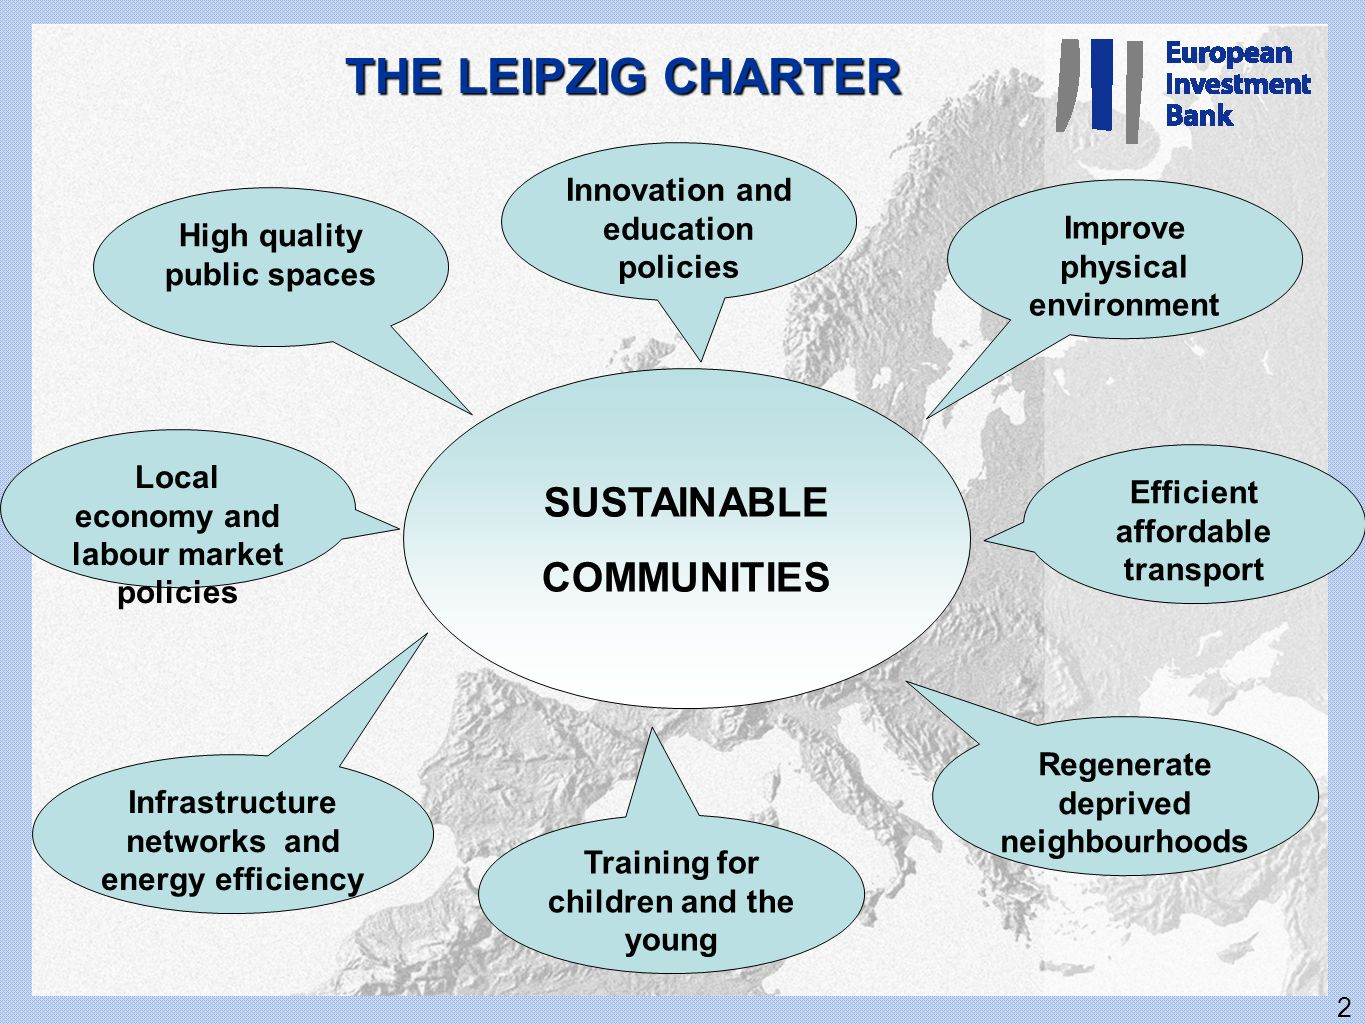 2 THE LEIPZIG CHARTER SUSTAINABLE COMMUNITIES Innovation and education policies High quality public spaces Infrastructure networks and energy efficien